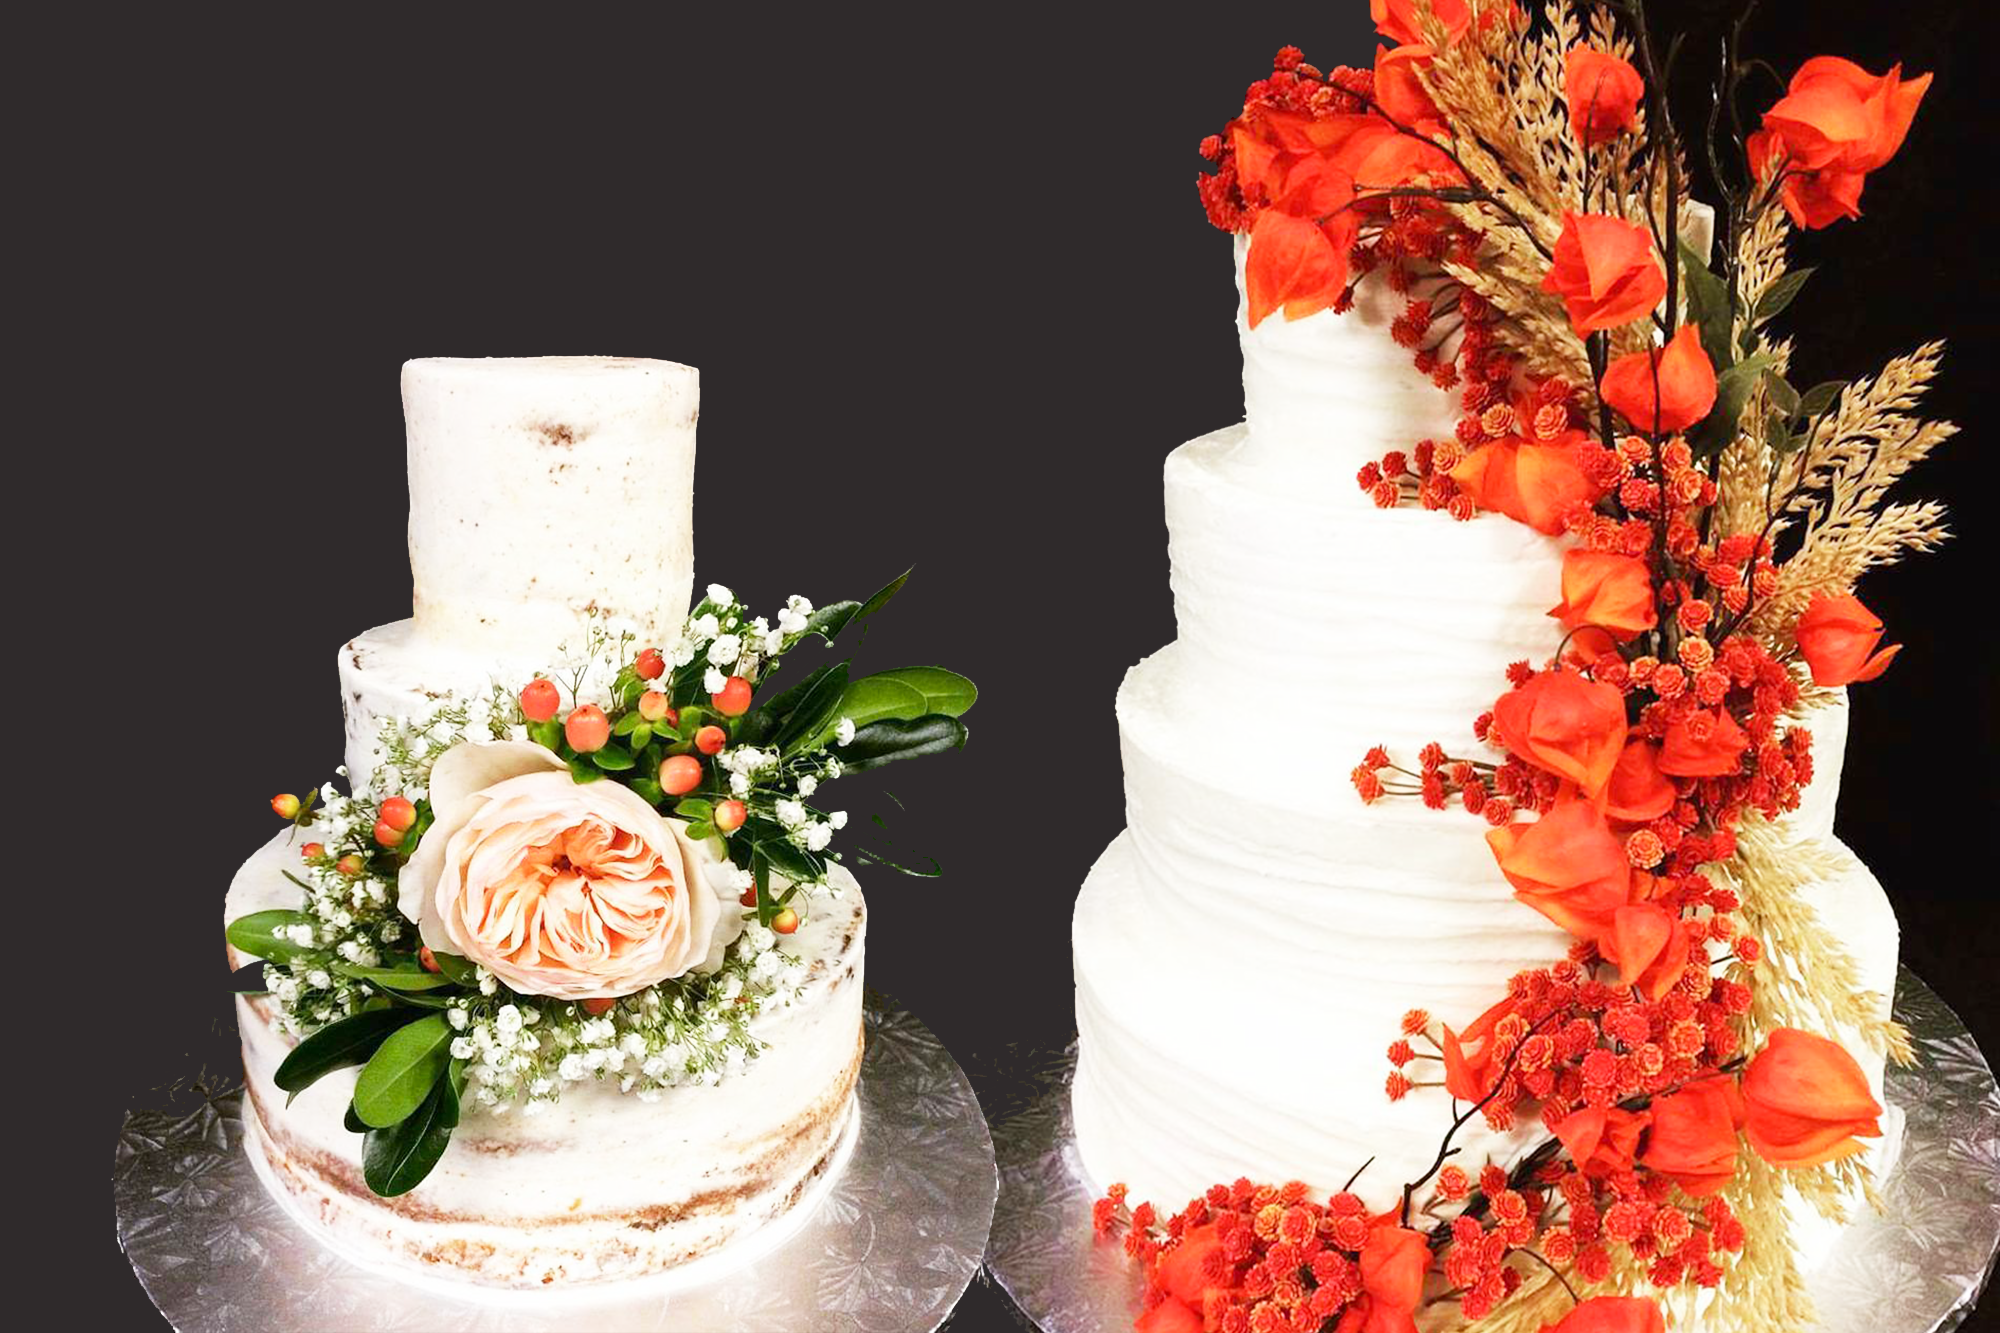 - We believe that we are best suited to help you celebrate your wedding day by allowing our superb bakers to create the cake of your dreams. Let us assist in helping you select and design the perfect cake. Our process is seamless and simple: Just make an appointment, and our bakers she will discuss the wide variety of flavor options, fillings and designs for your cake. Once the ideal cake has been agreed upon, rest assured knowing that we will deliver and set your cake up with precision and polish.